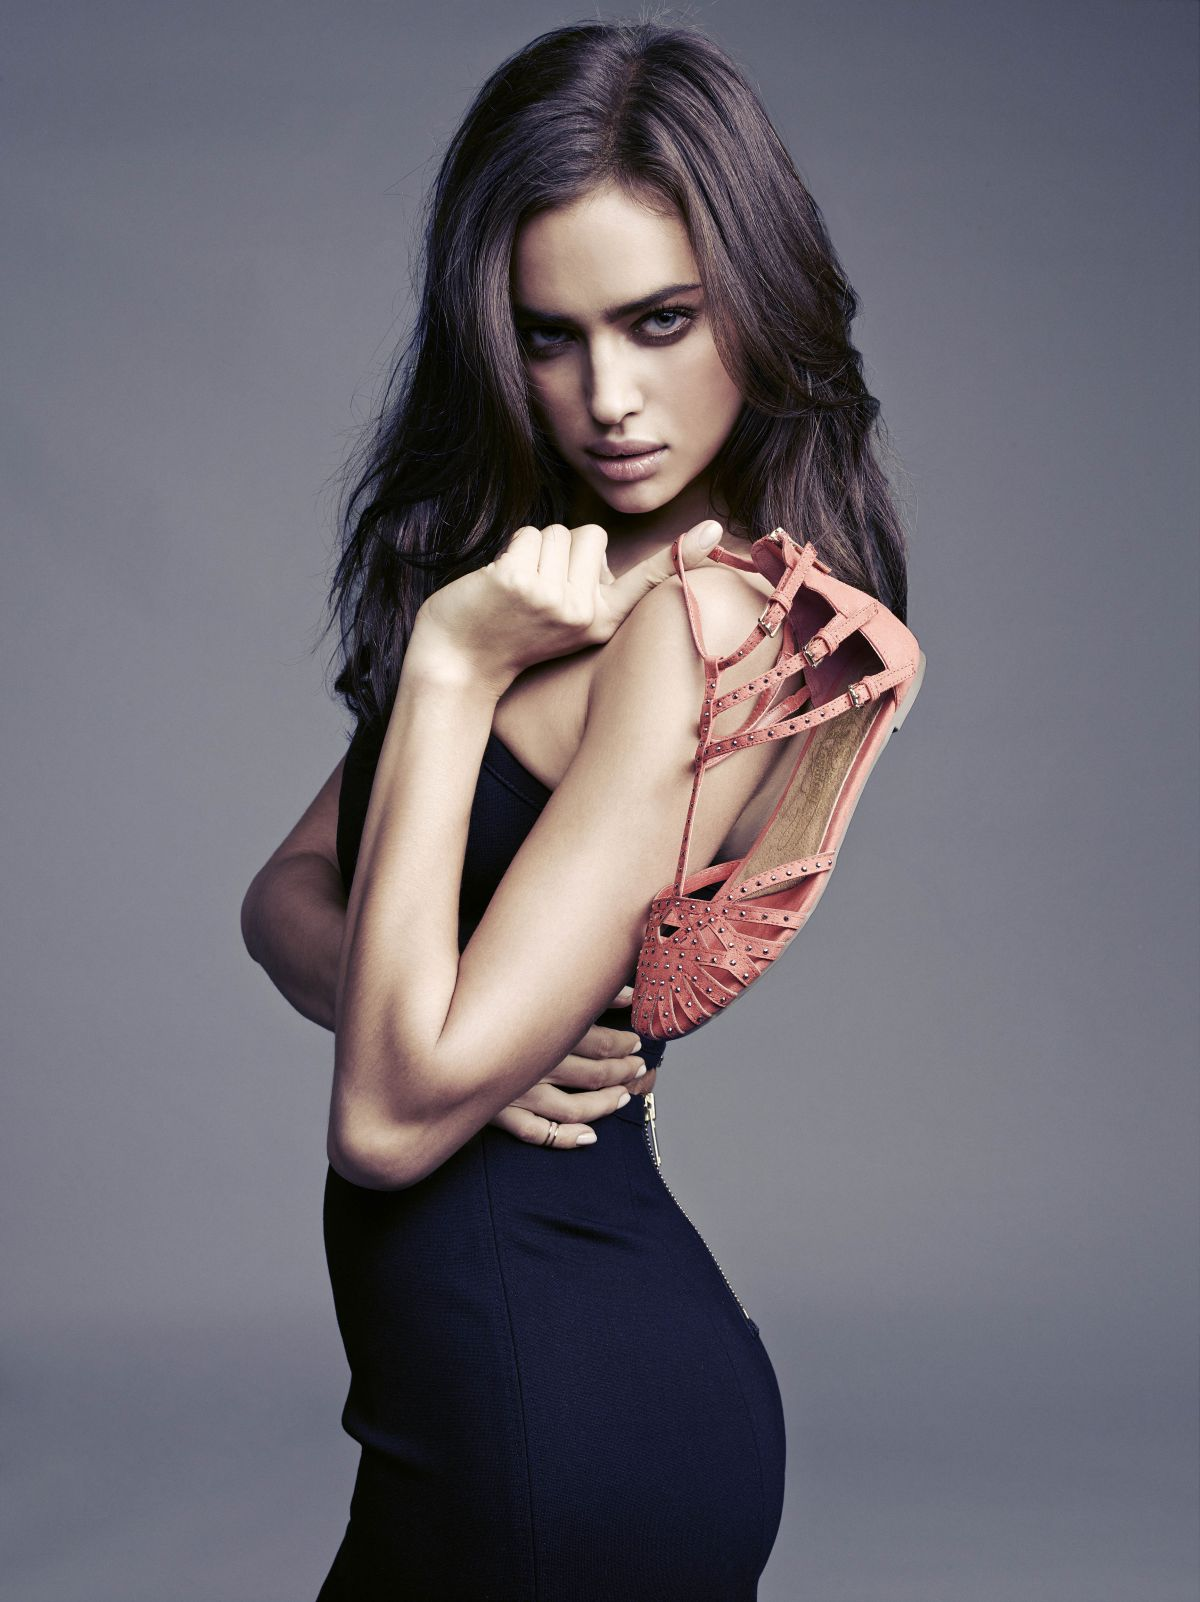 Irina Shayk at XTI Spring Summer Spring Campaign Pictures